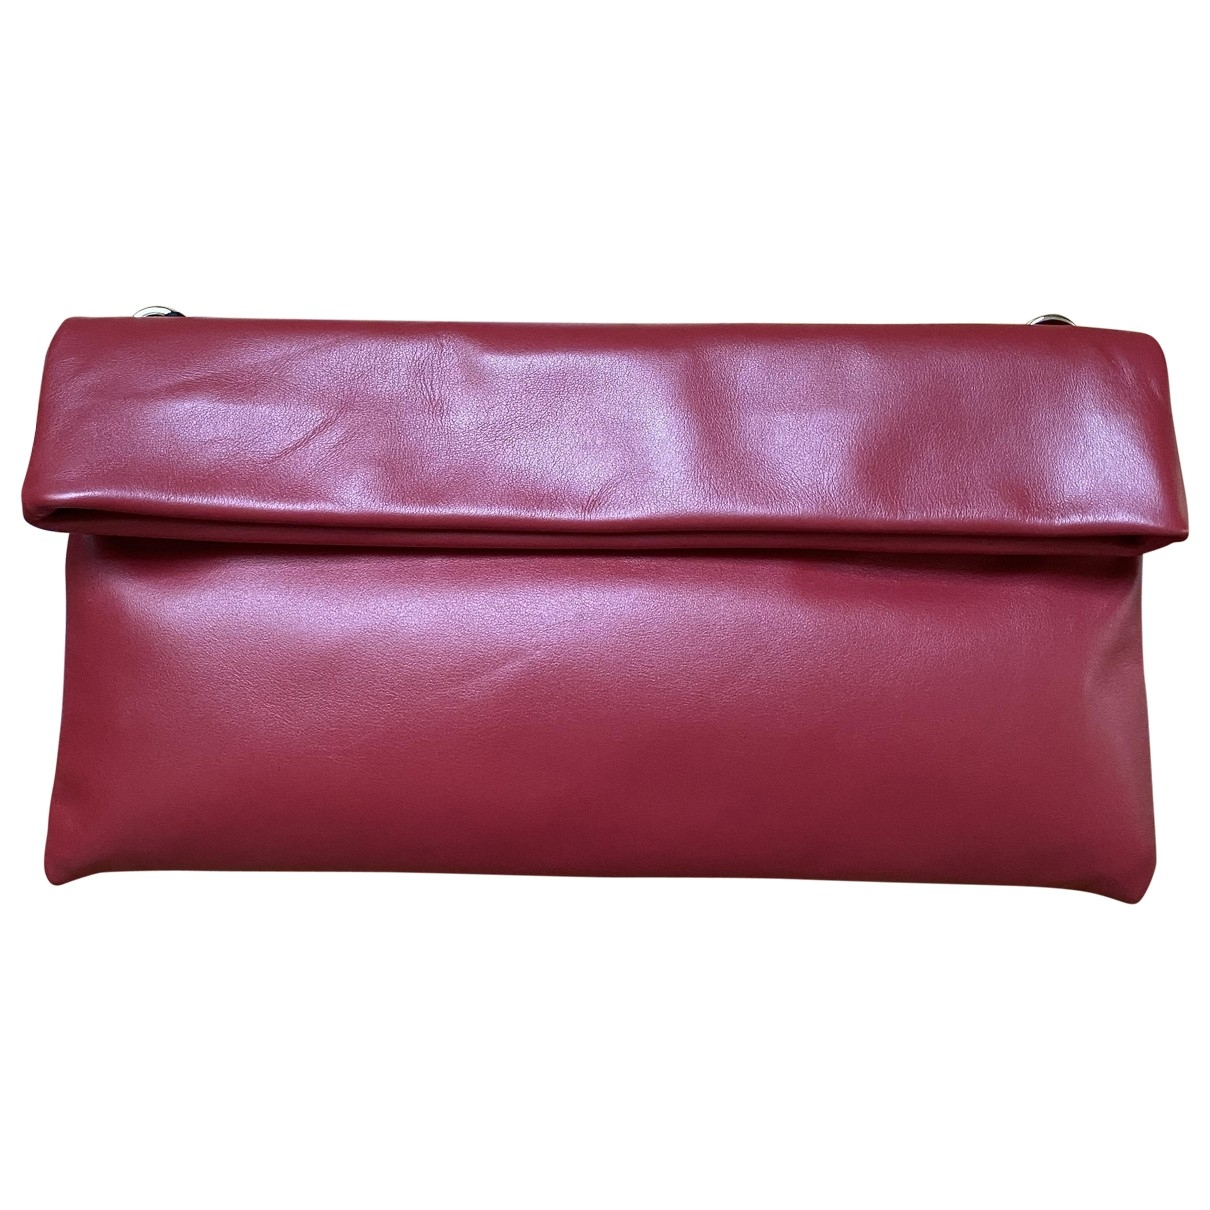 Gianni Chiarini \N Clutch in  Rot Leder